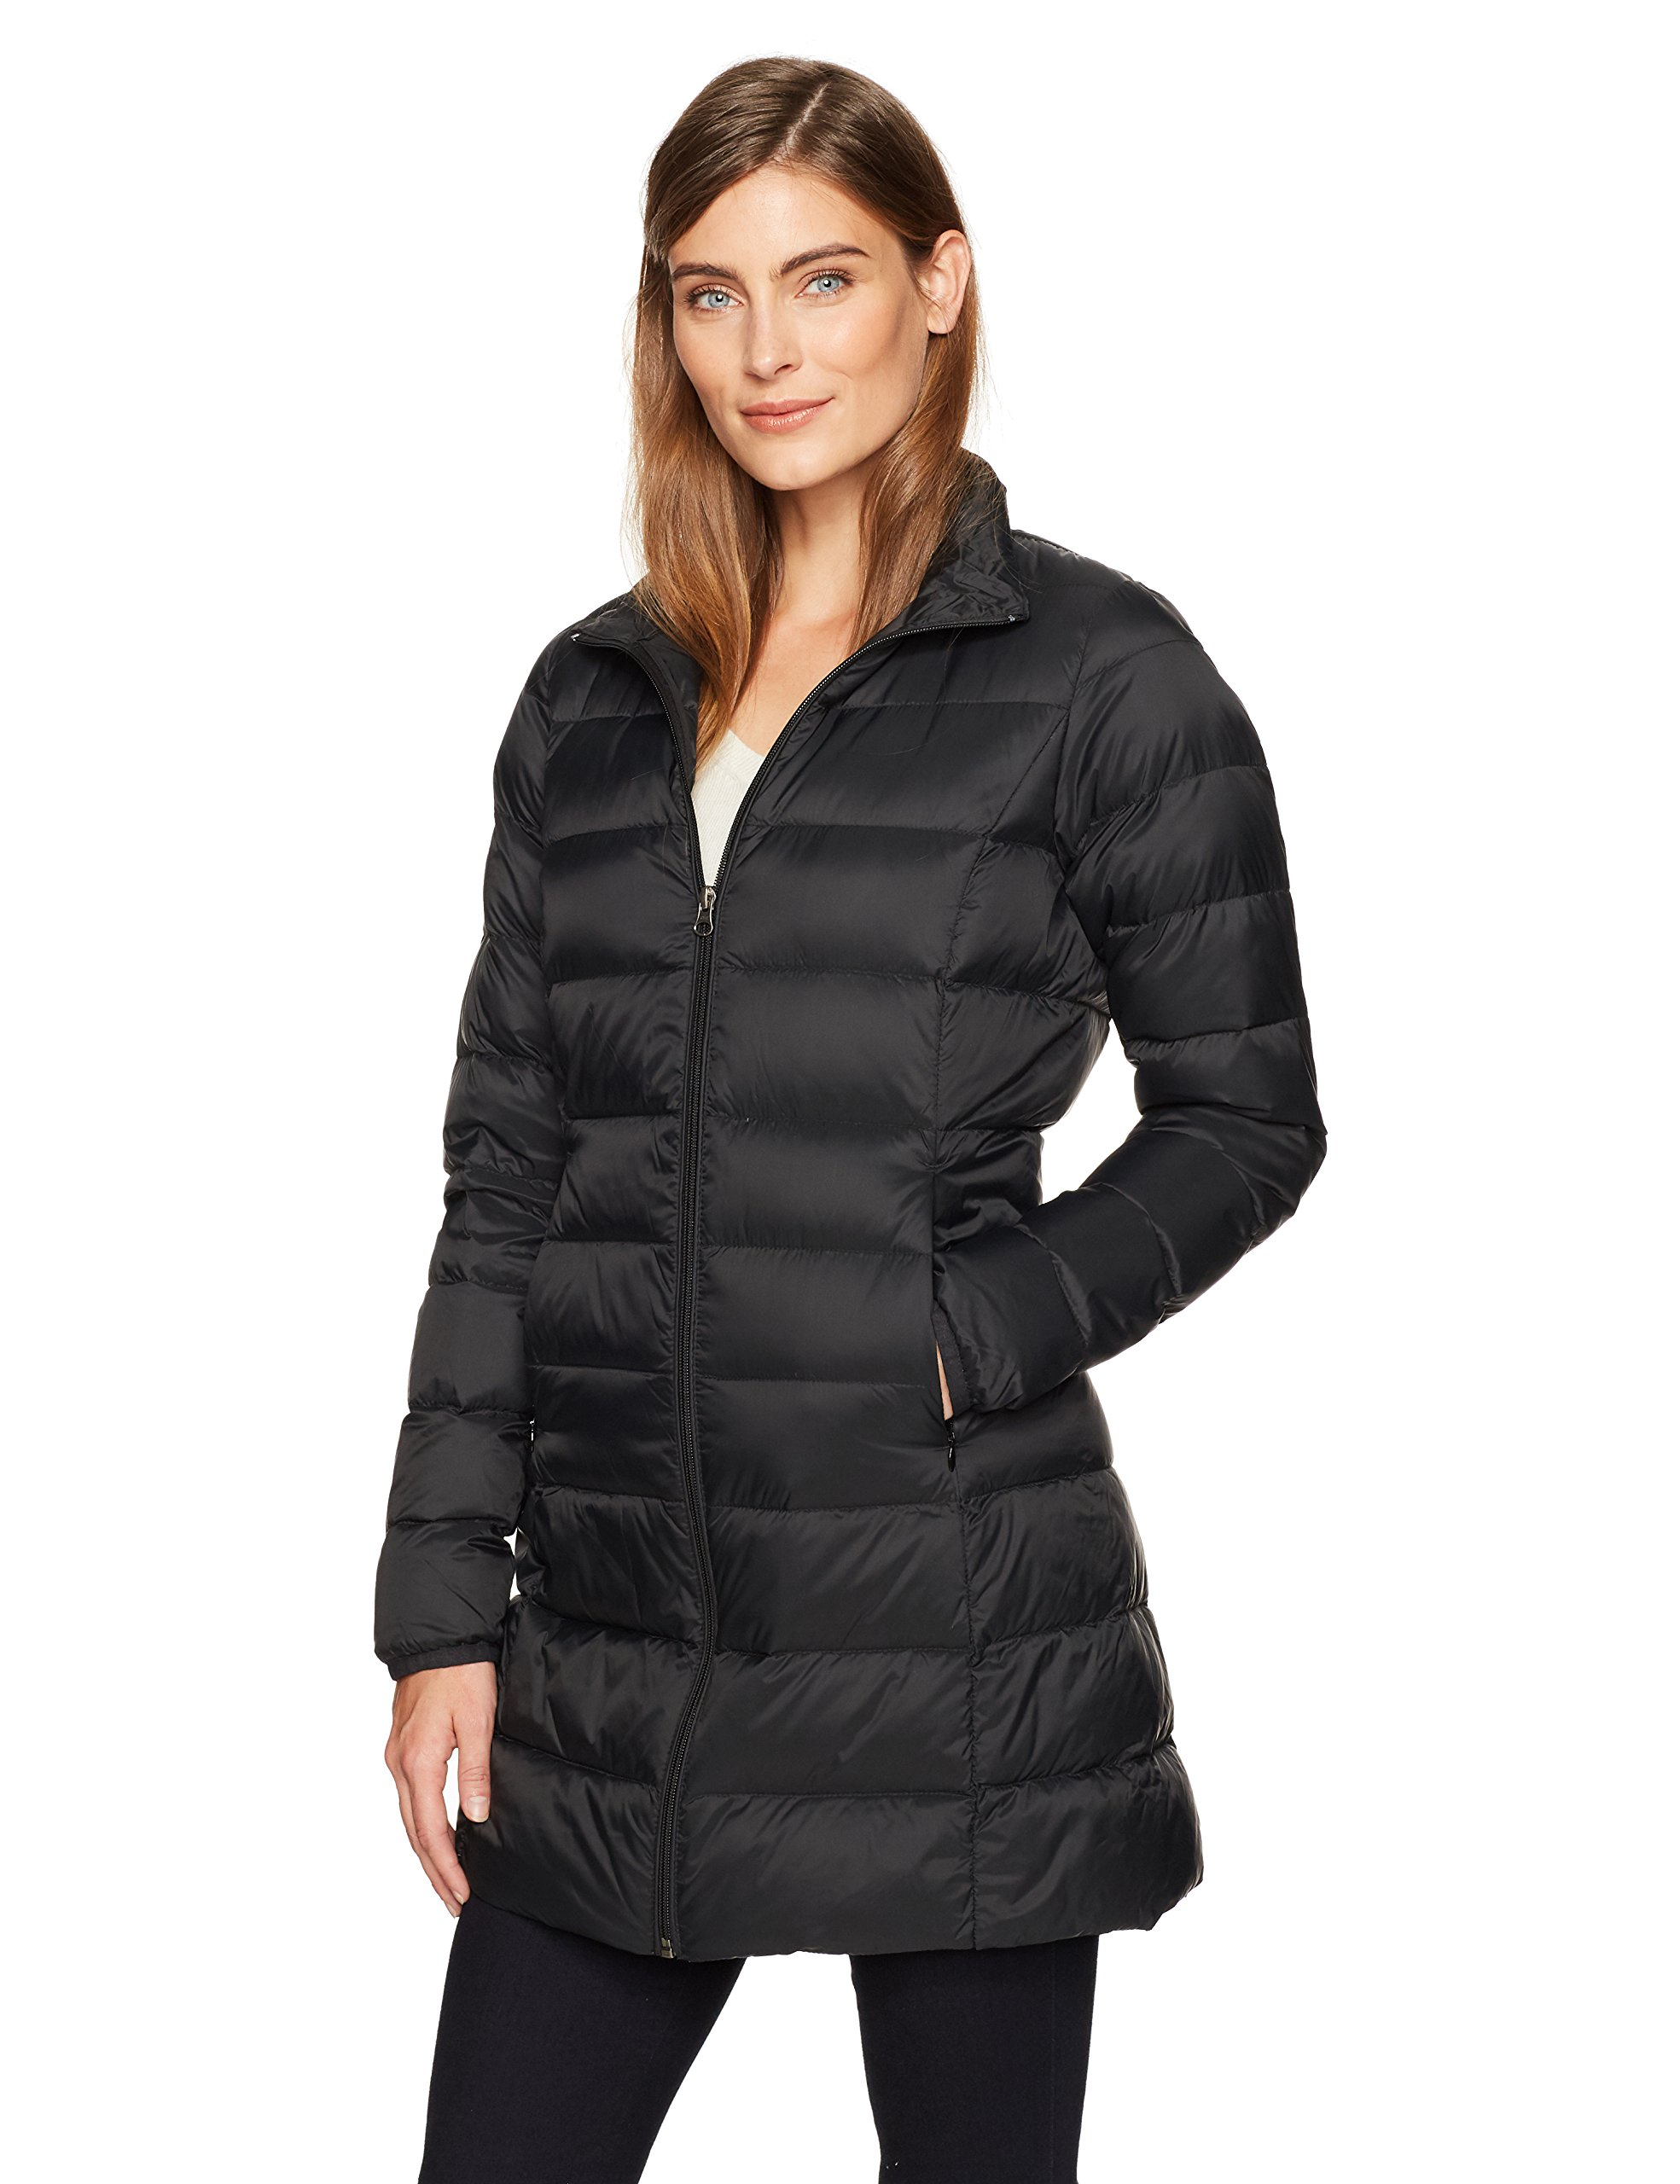 Amazon Essentials Women's Lightweight Water-Resistant Packable Down Coat, Black Caviar, Large by Amazon Essentials